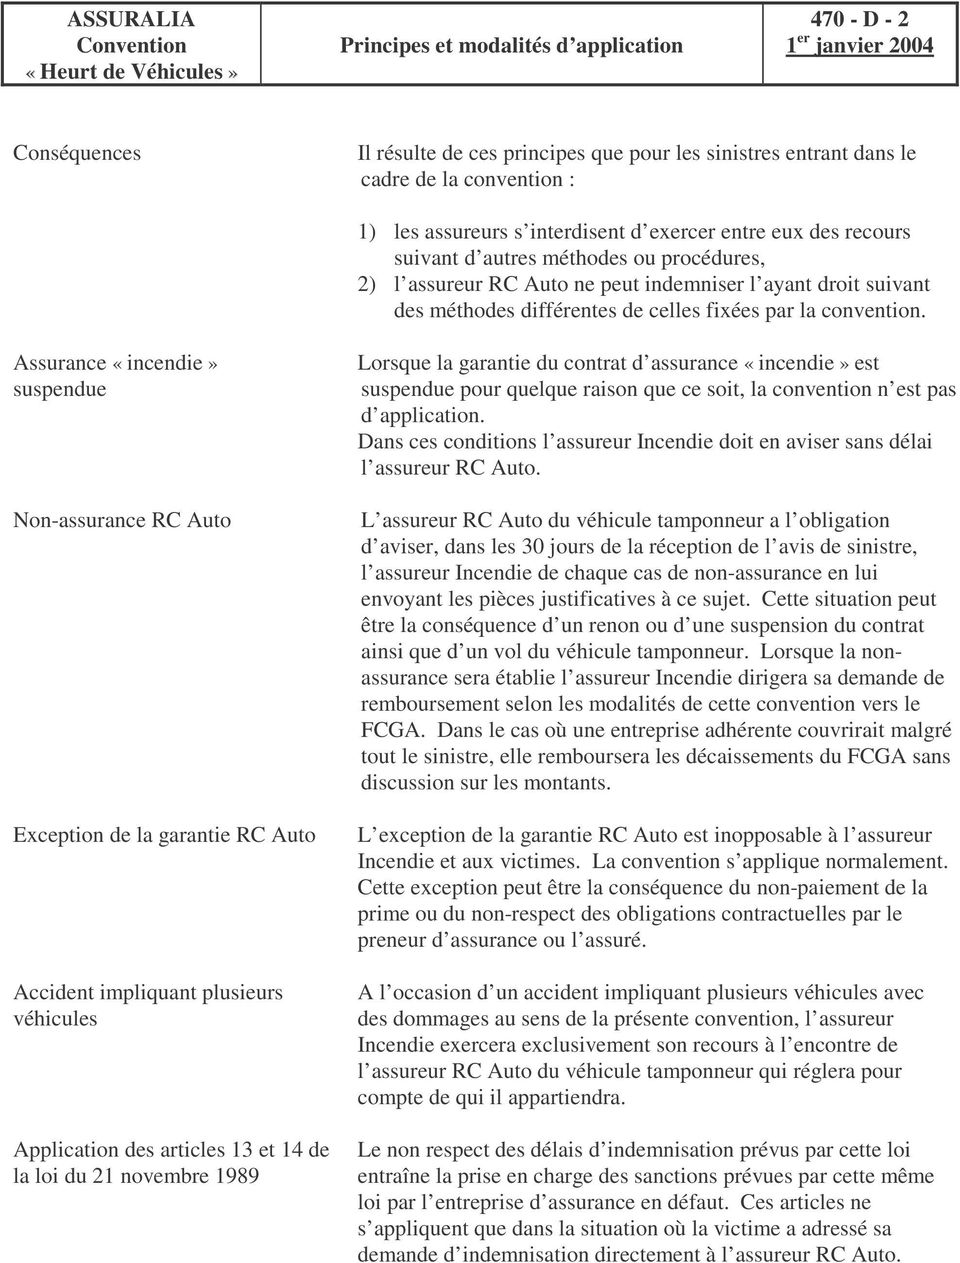 Assurance «incendie» suspendue Non-assurance RC Auto Exception de la garantie RC Auto Accident impliquant plusieurs véhicules Application des articles 13 et 14 de la loi du 21 novembre 1989 Lorsque